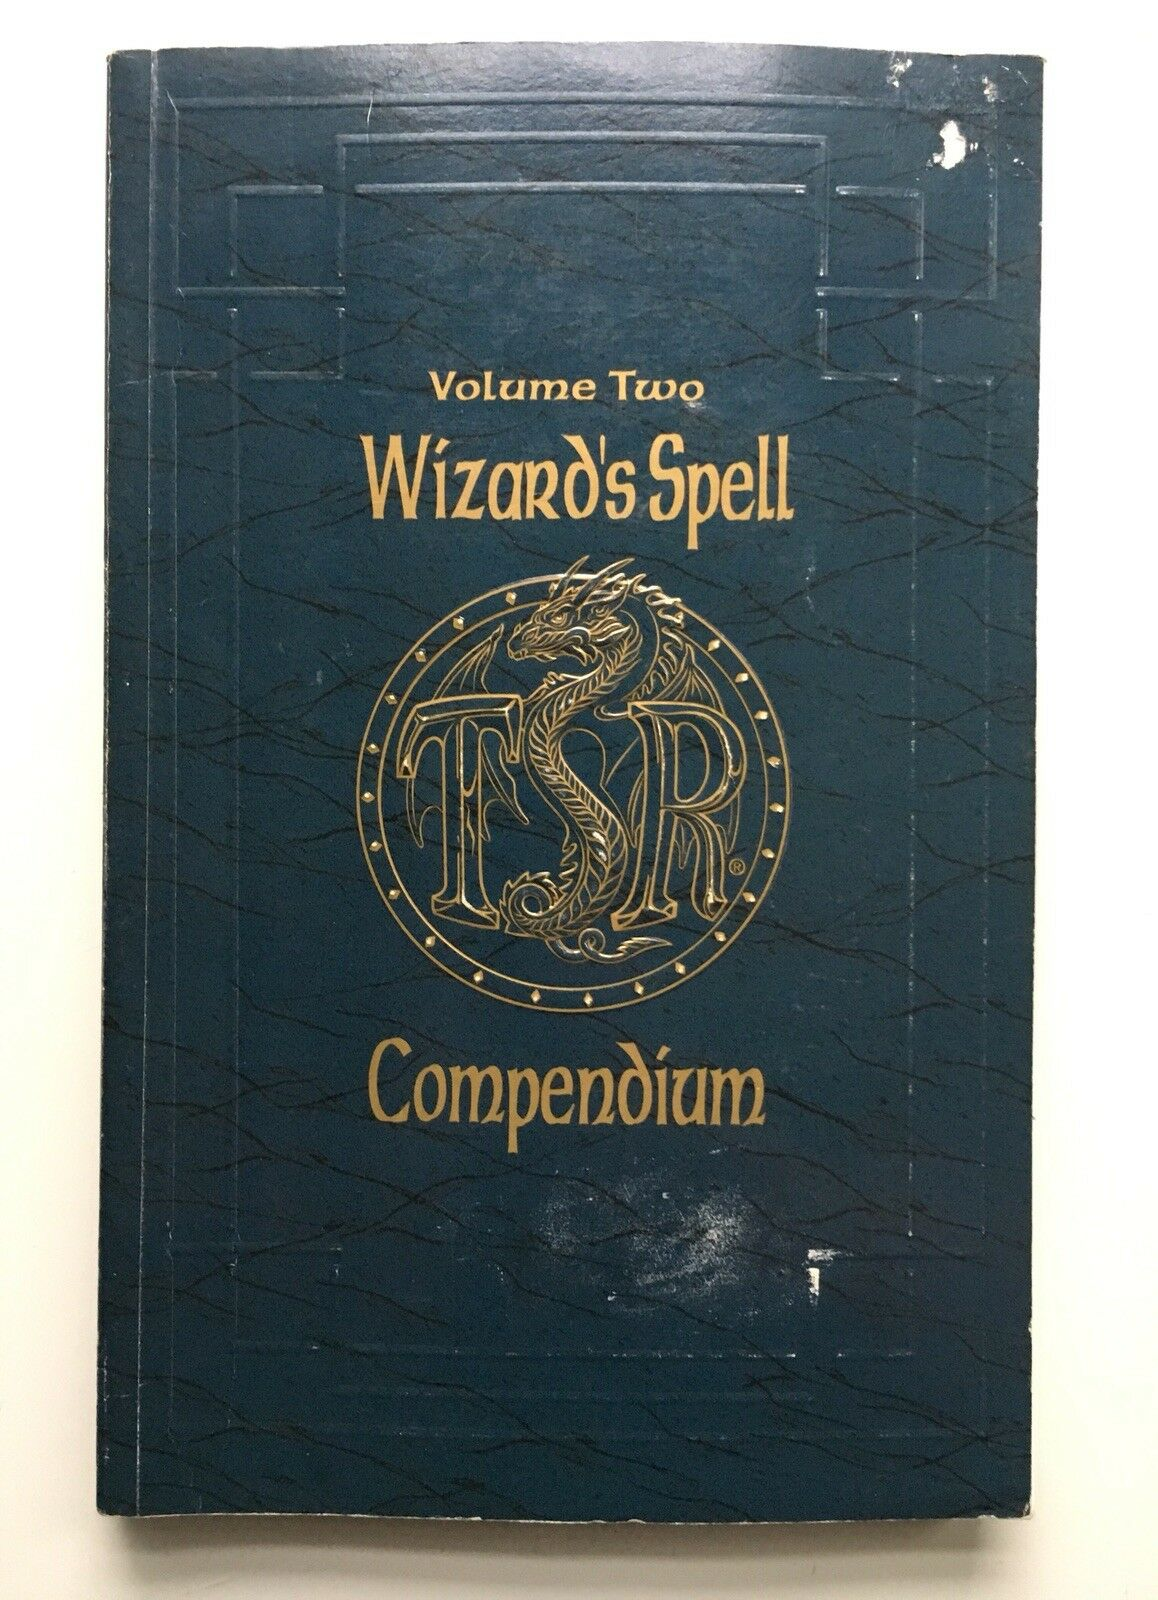 Advanced Dungeons & Dragons Book  Wizard's Spell Compendium Vol 2 - 2168